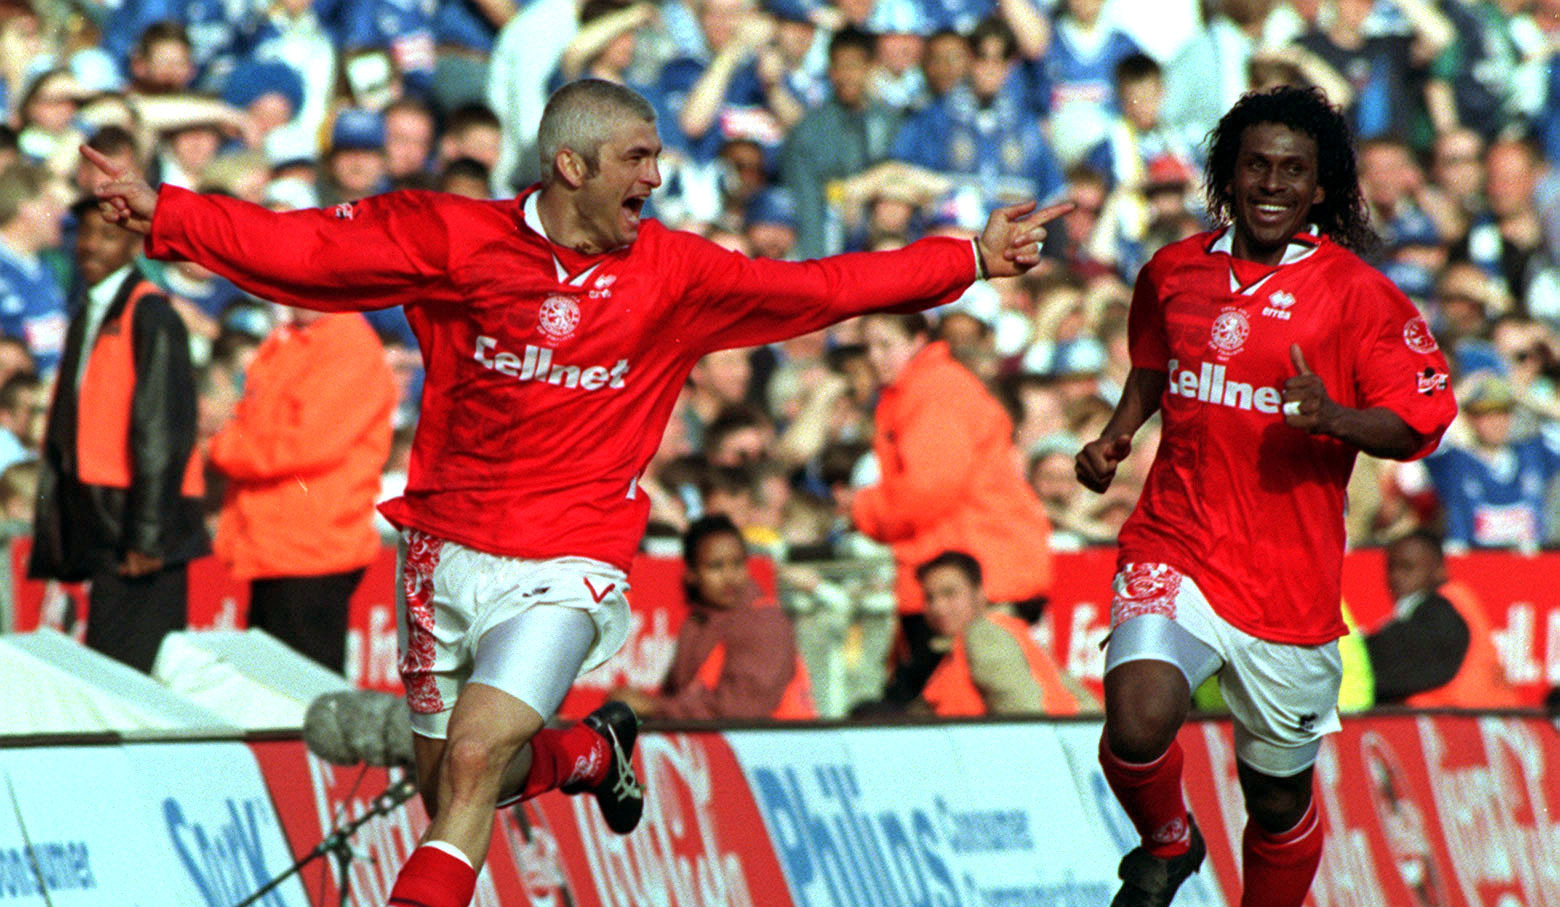 Boro's 10 most decorated players